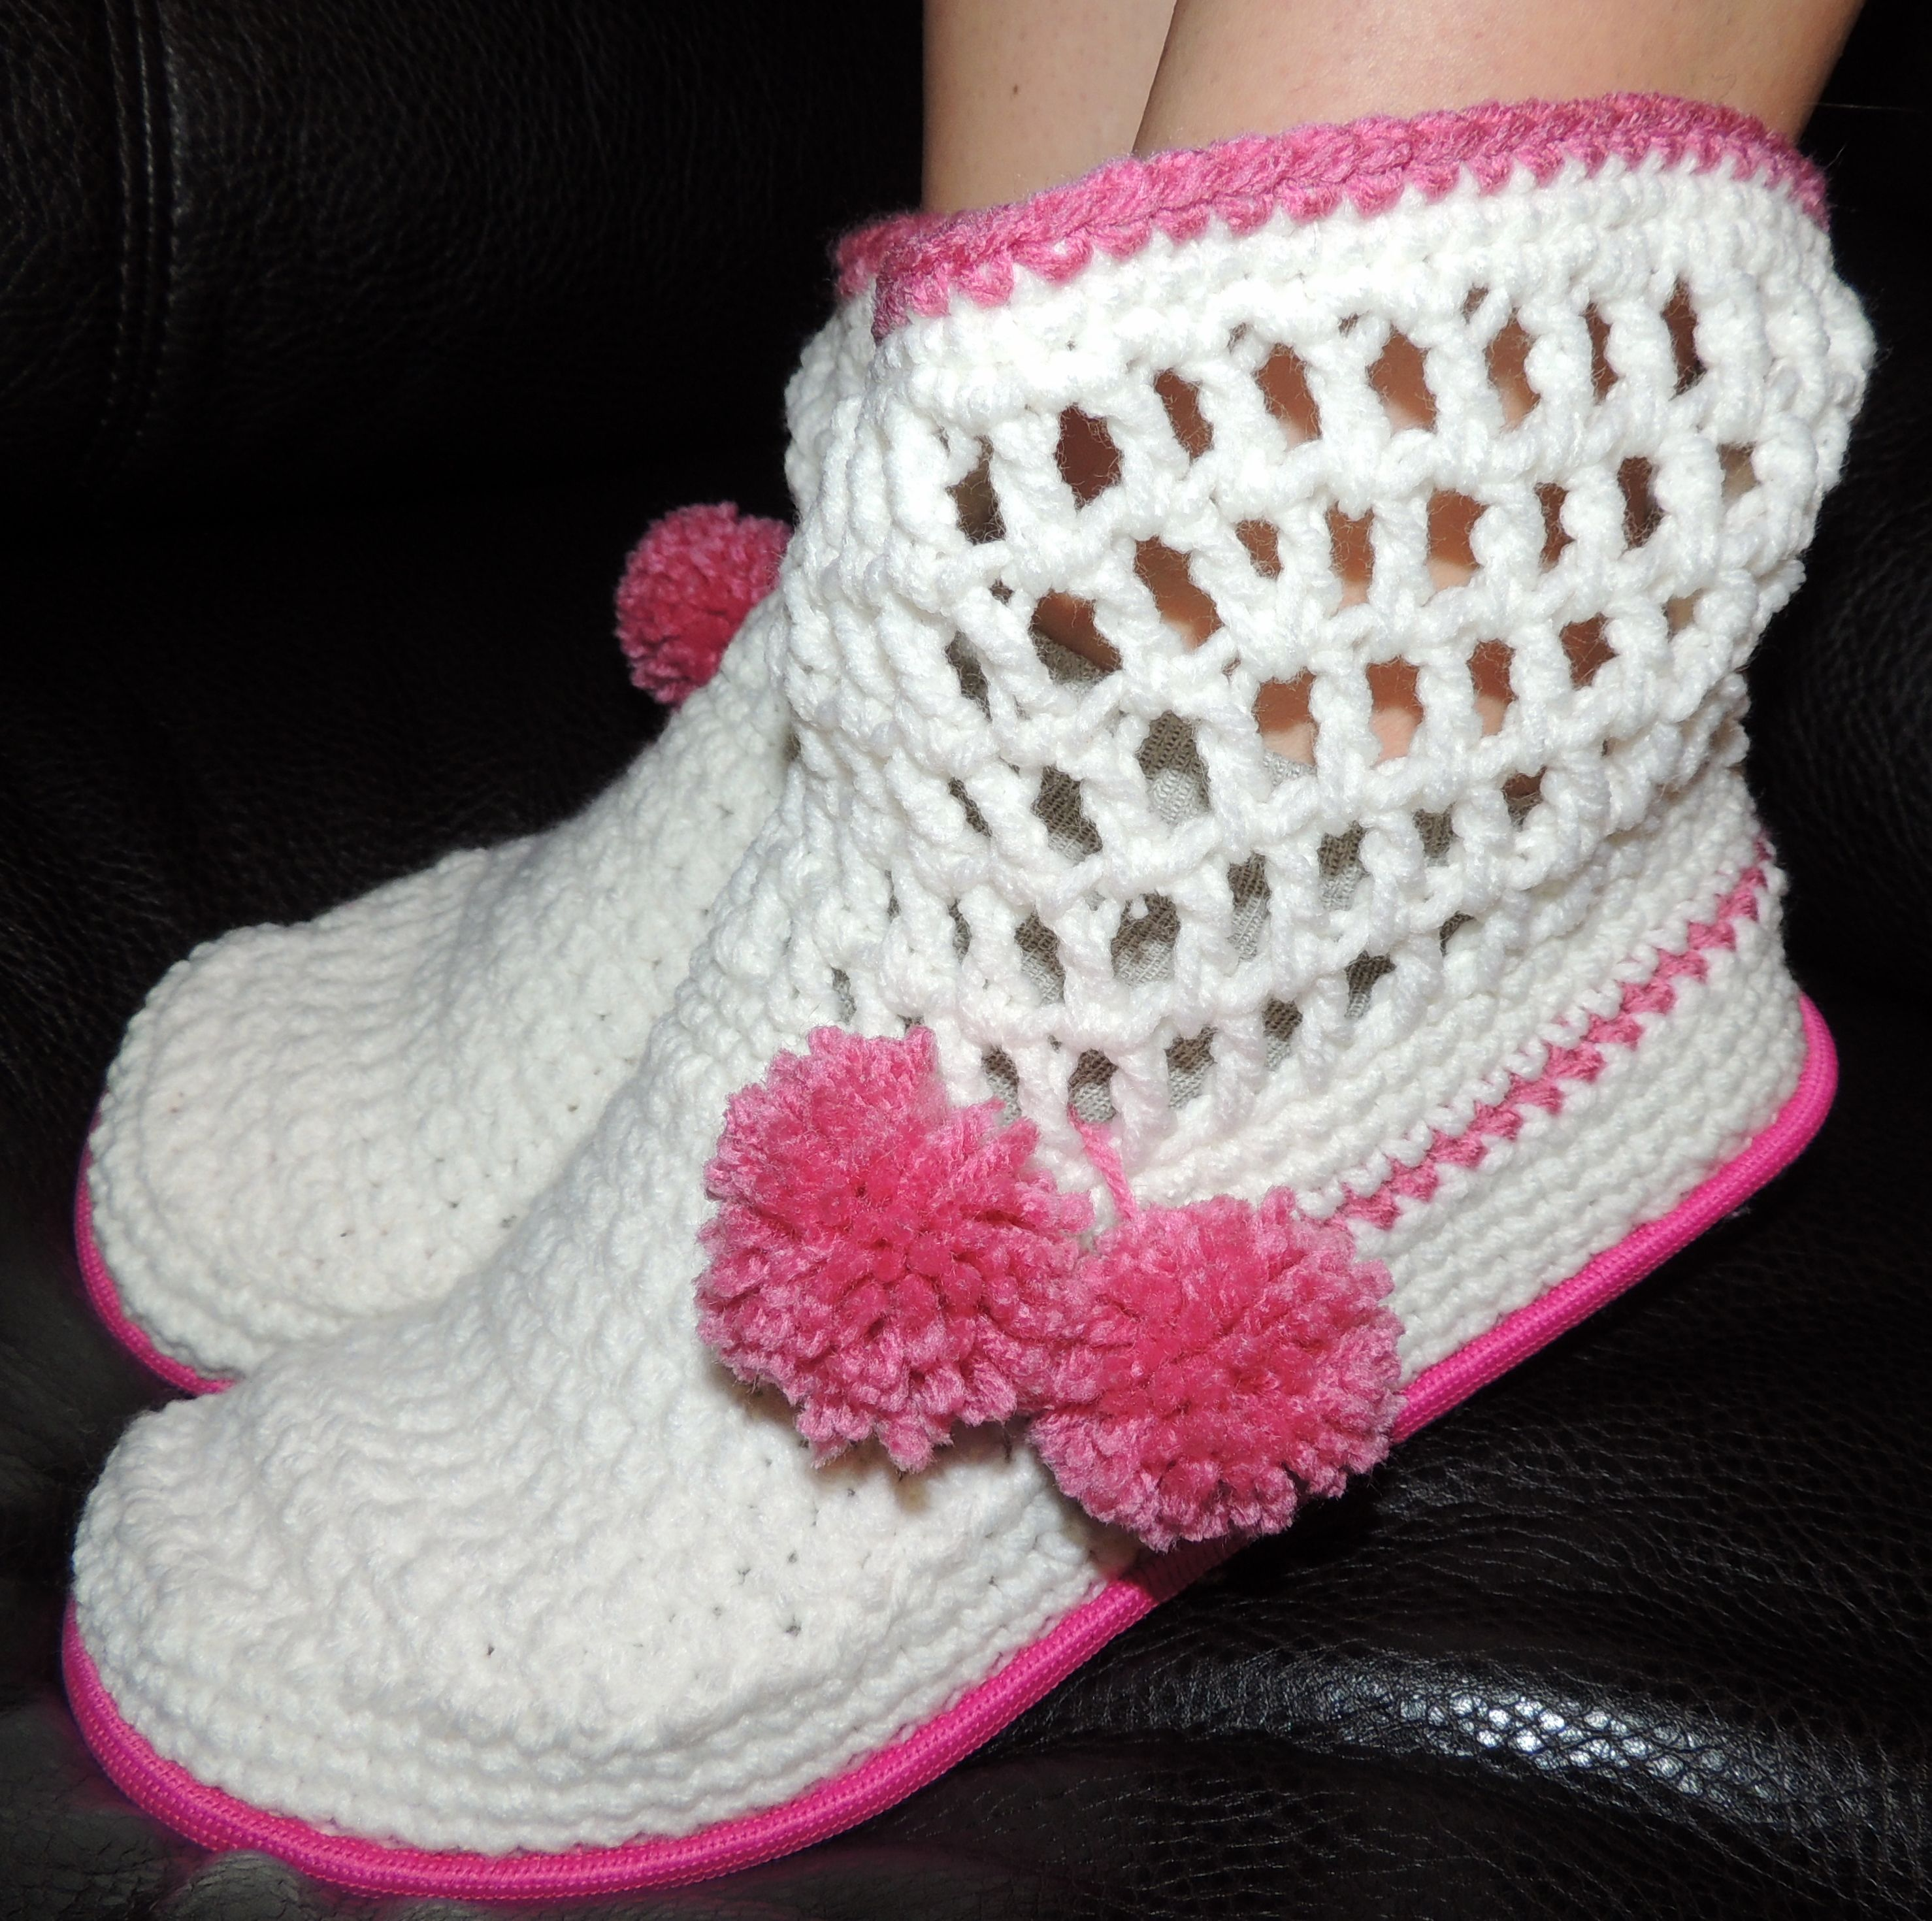 https://www.etsy.com/listing/180088308/hand-crocheted-boots-slippers ...